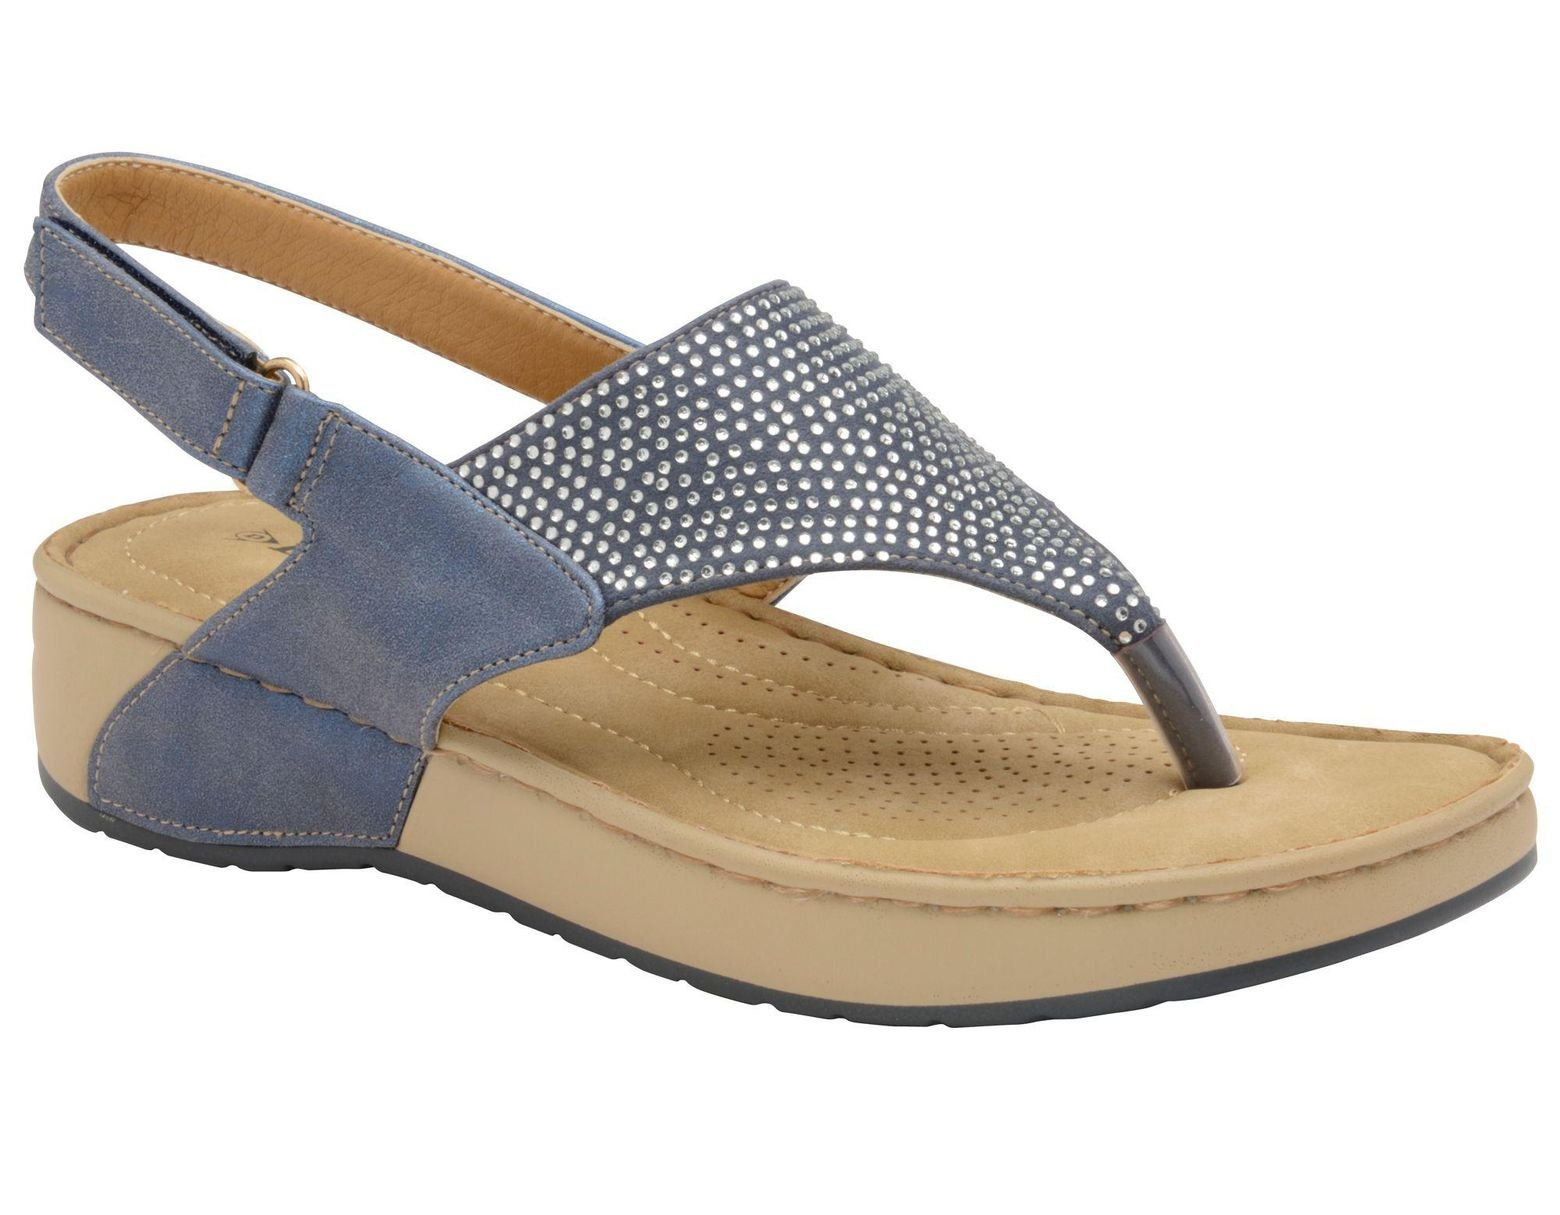 d3498a5882b6 Dunlop Lapis Blue 'zelda' Ladies Toe Post Sandals in Blue - Lyst